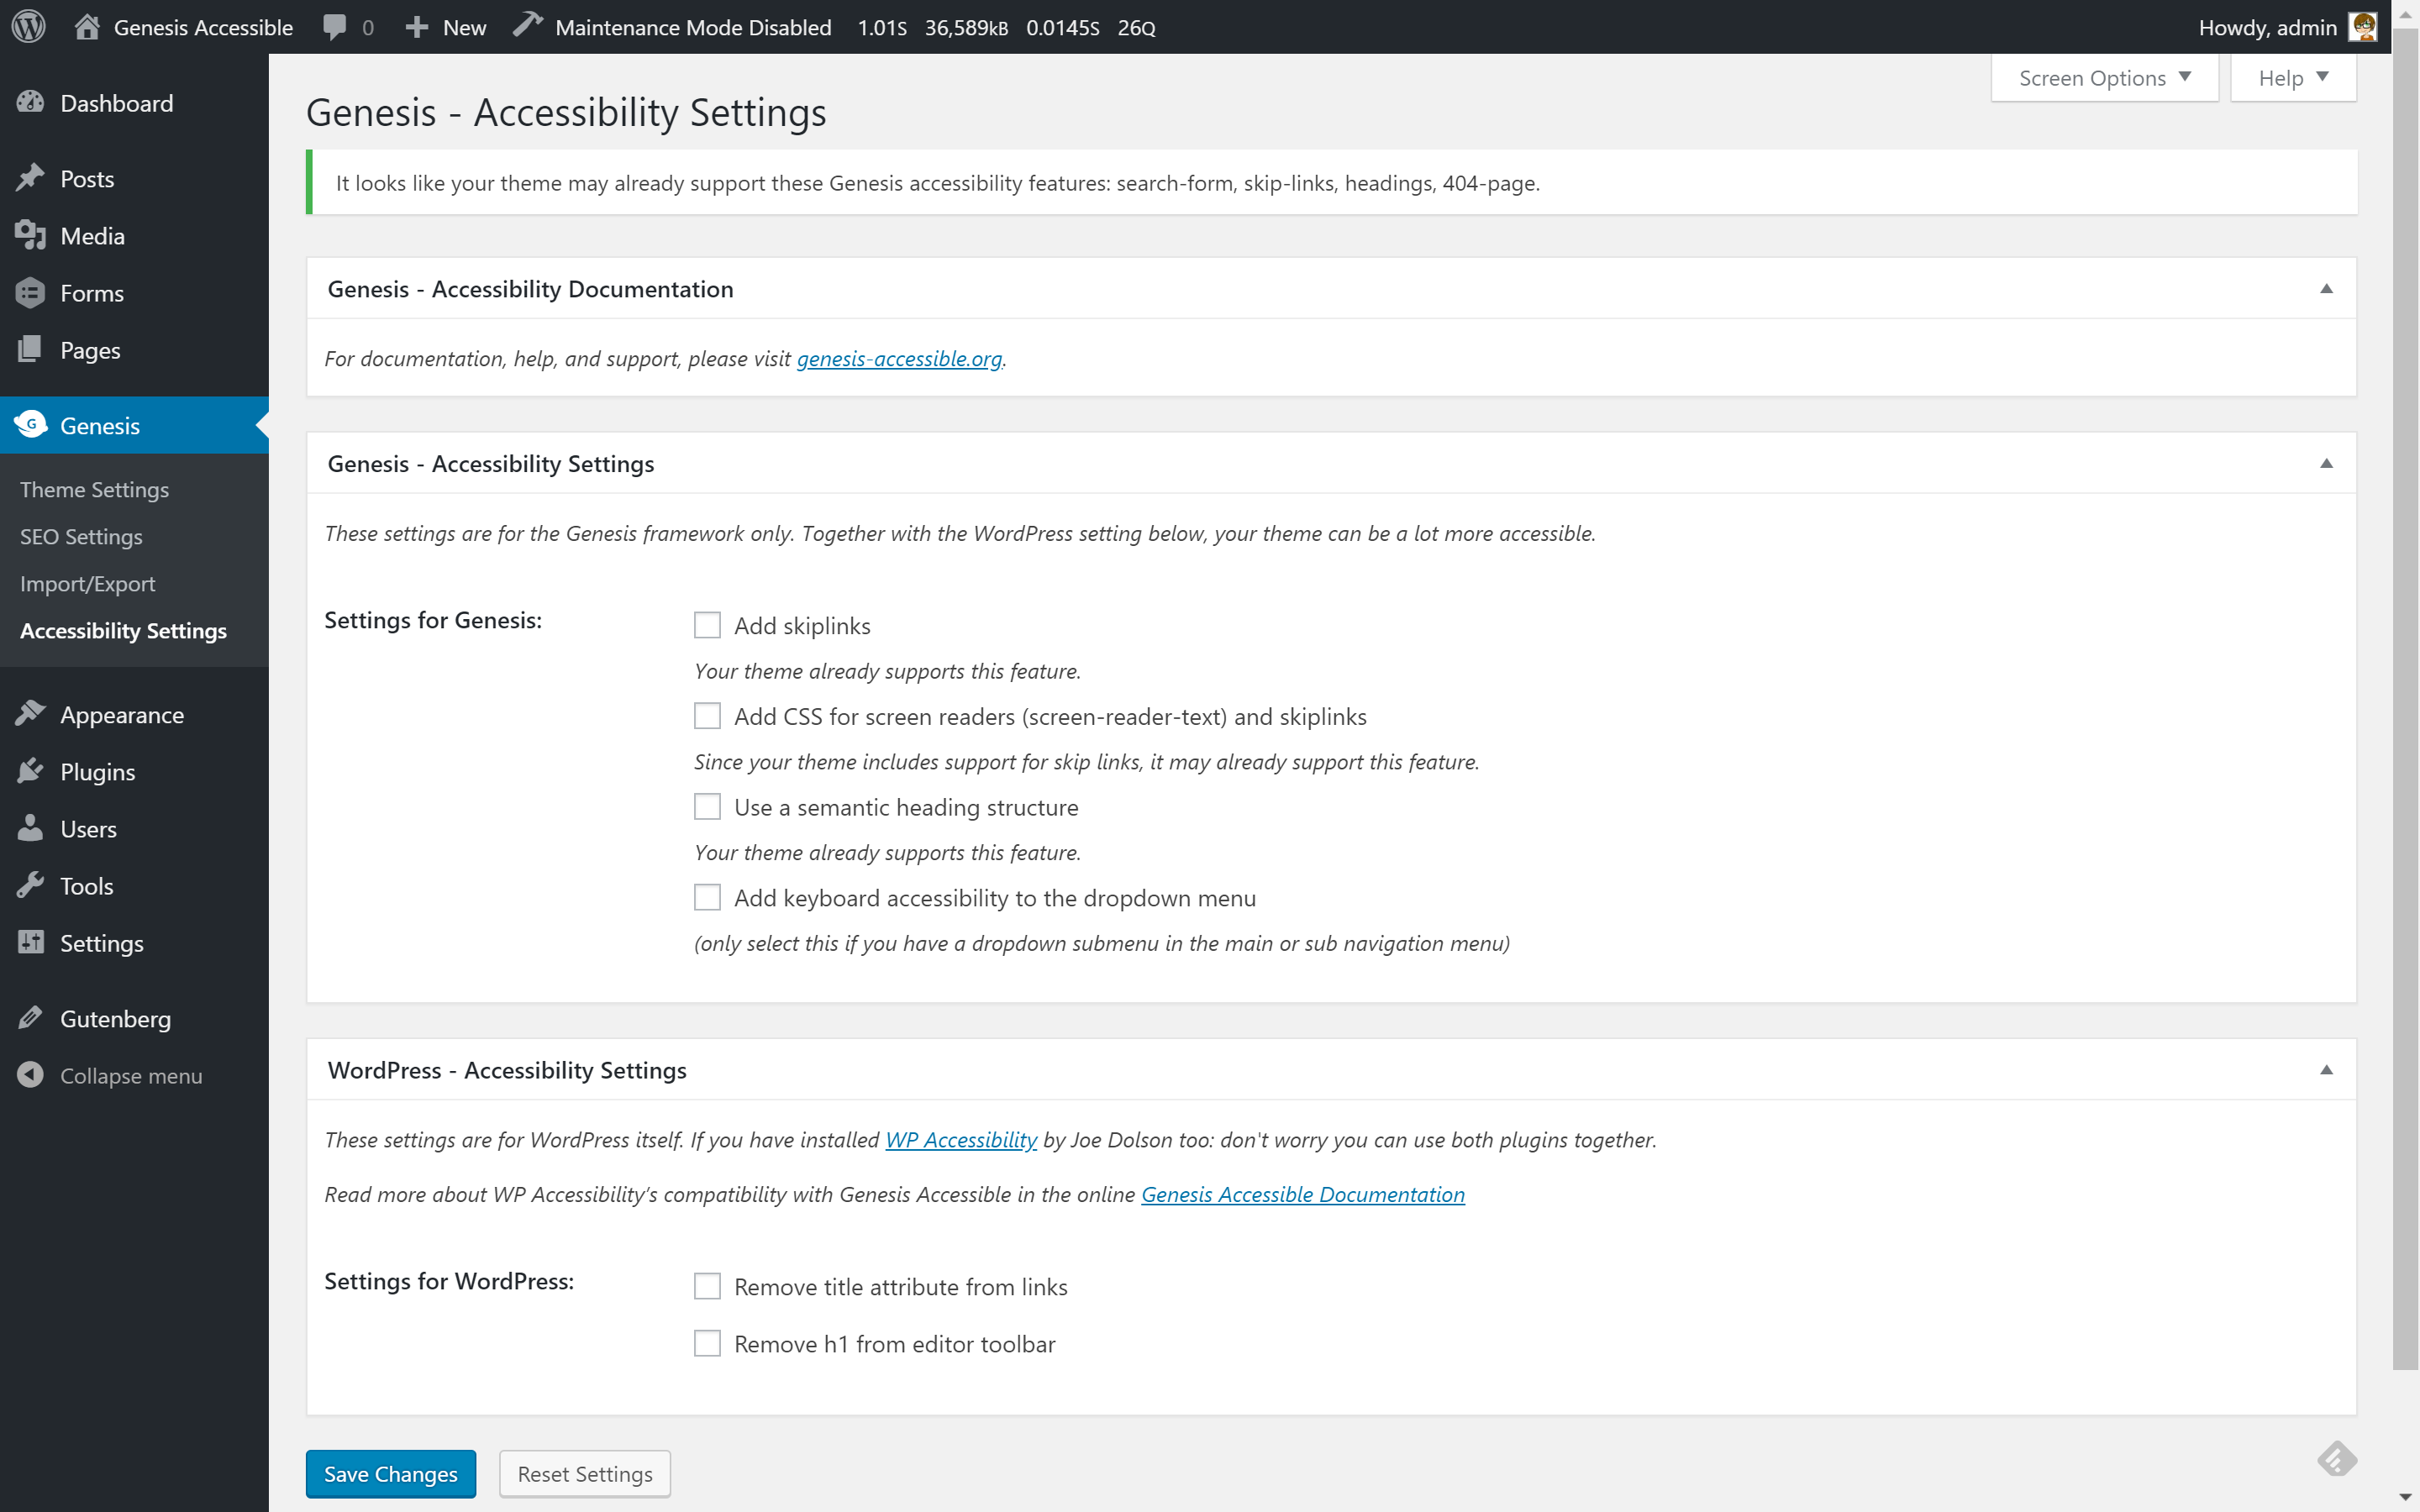 Screenshot of the Genesis Accessible settings page